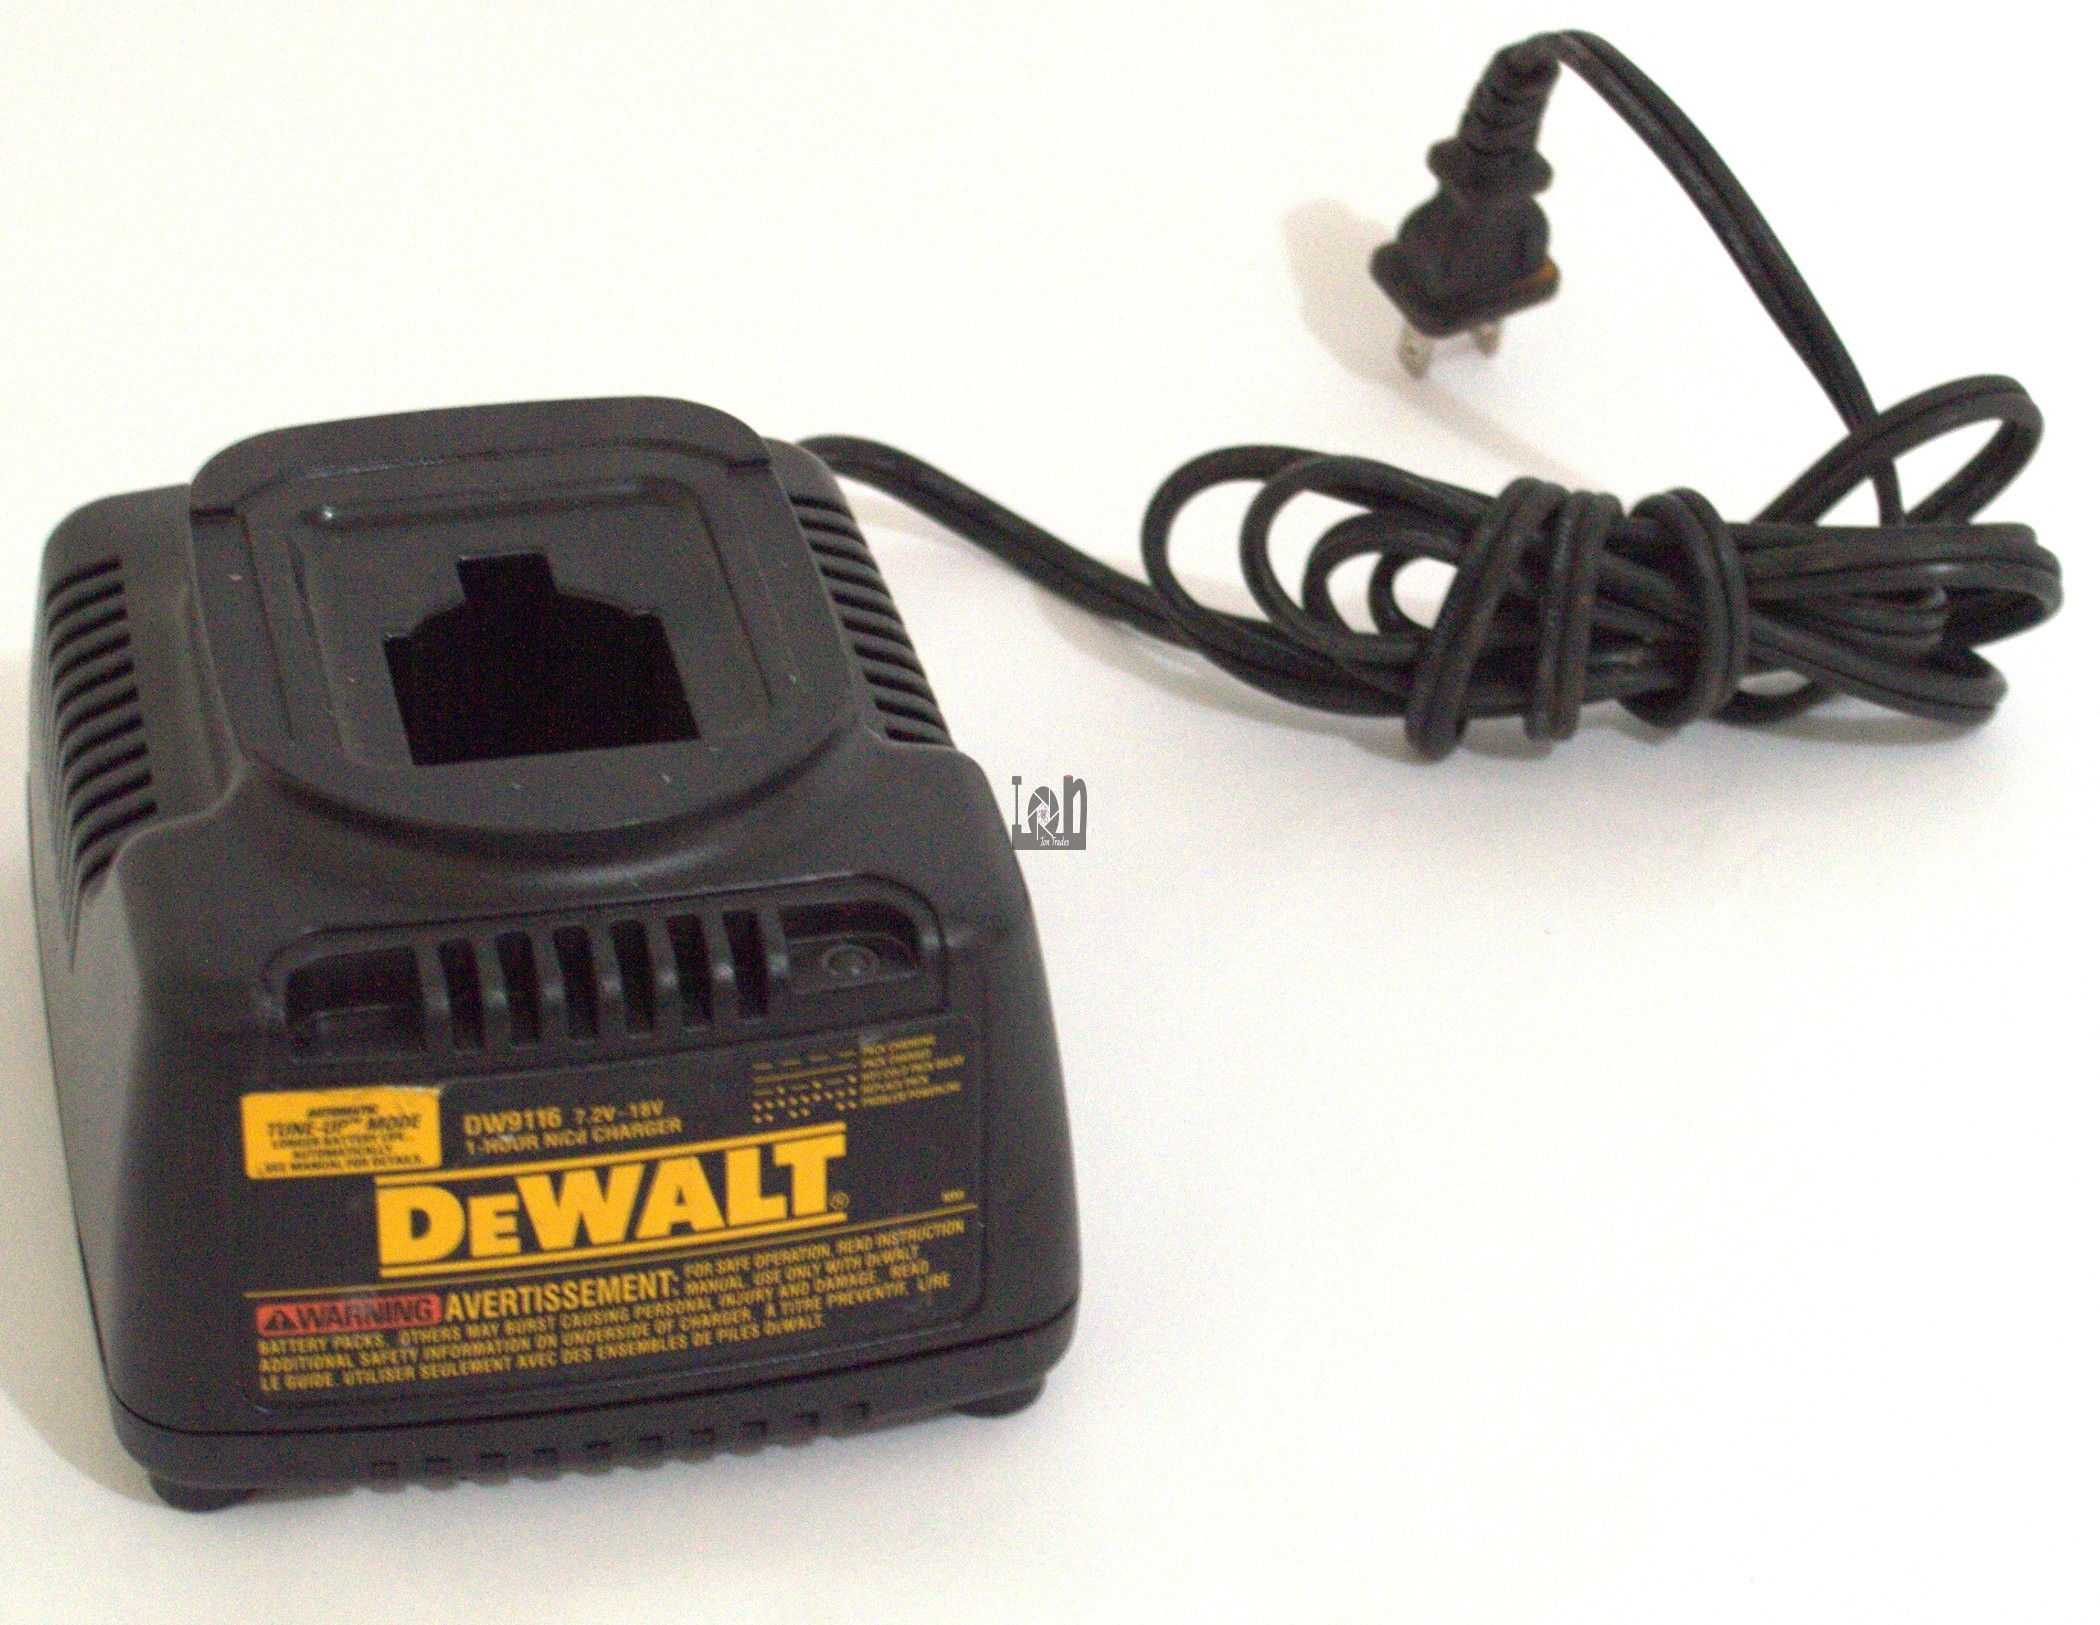 Dewalt 7.2V-18V 1-Hour NiCd Battery Charger #DW9116